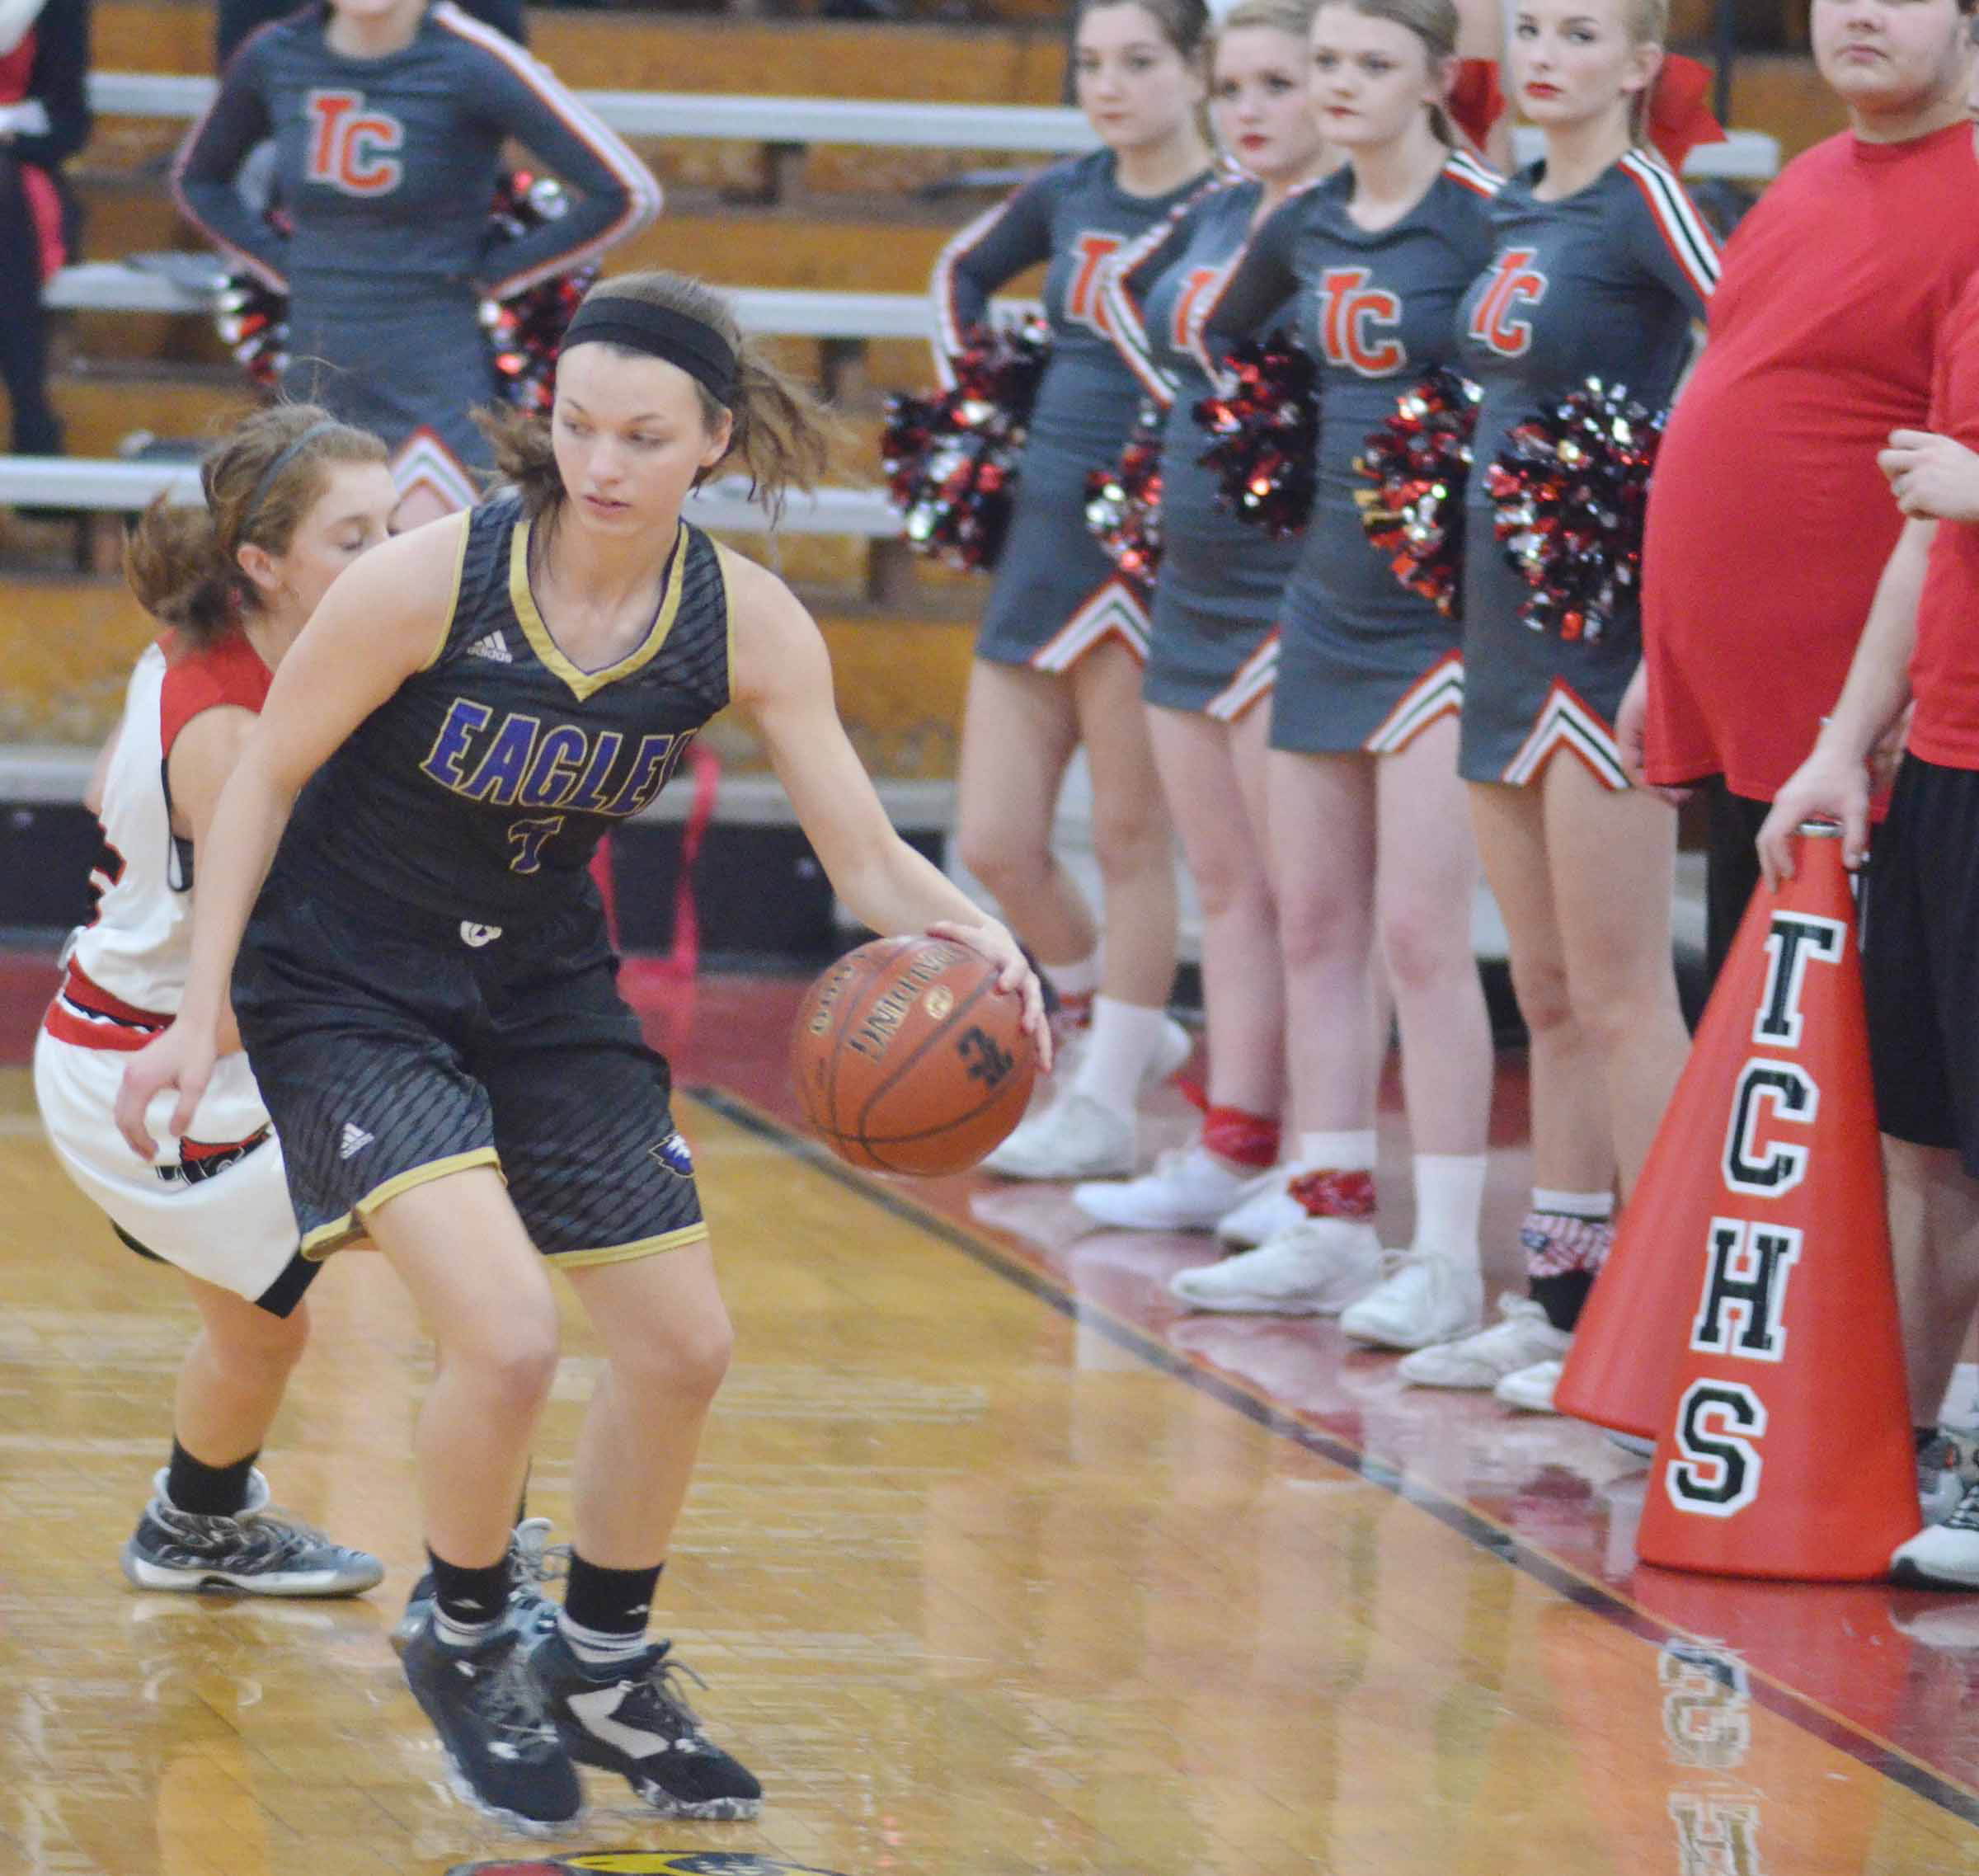 CHS senior Caylie Blair protects the ball.